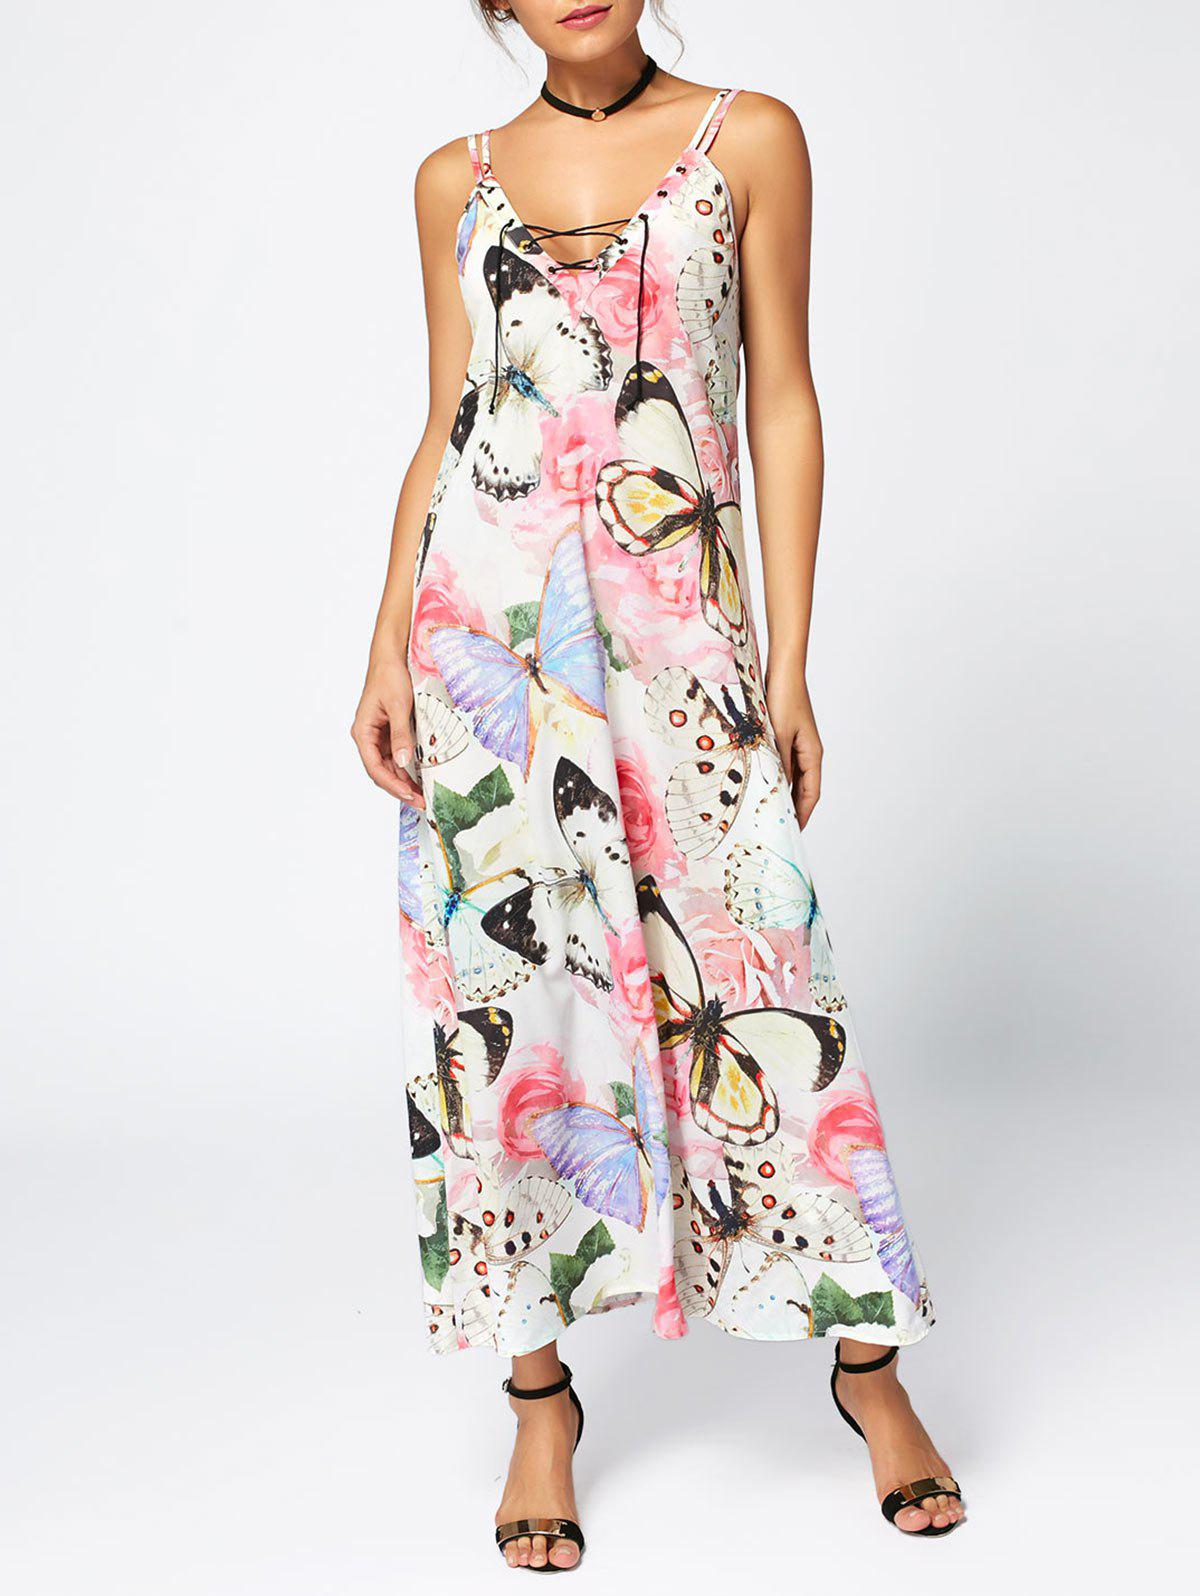 Rose Butterfly Print Slip Maxi DressWOMEN<br><br>Size: M; Color: FLORAL; Style: Casual; Material: Polyester; Silhouette: Shift; Dress Type: Slip Dress; Dresses Length: Ankle-Length; Neckline: Spaghetti Strap; Sleeve Length: Sleeveless; Waist: Natural; Embellishment: Criss-Cross; Pattern Type: Butterfly,Floral,Print; Placement Print: No; With Belt: No; Season: Summer; Weight: 0.2200kg; Package Contents: 1 x Dress;